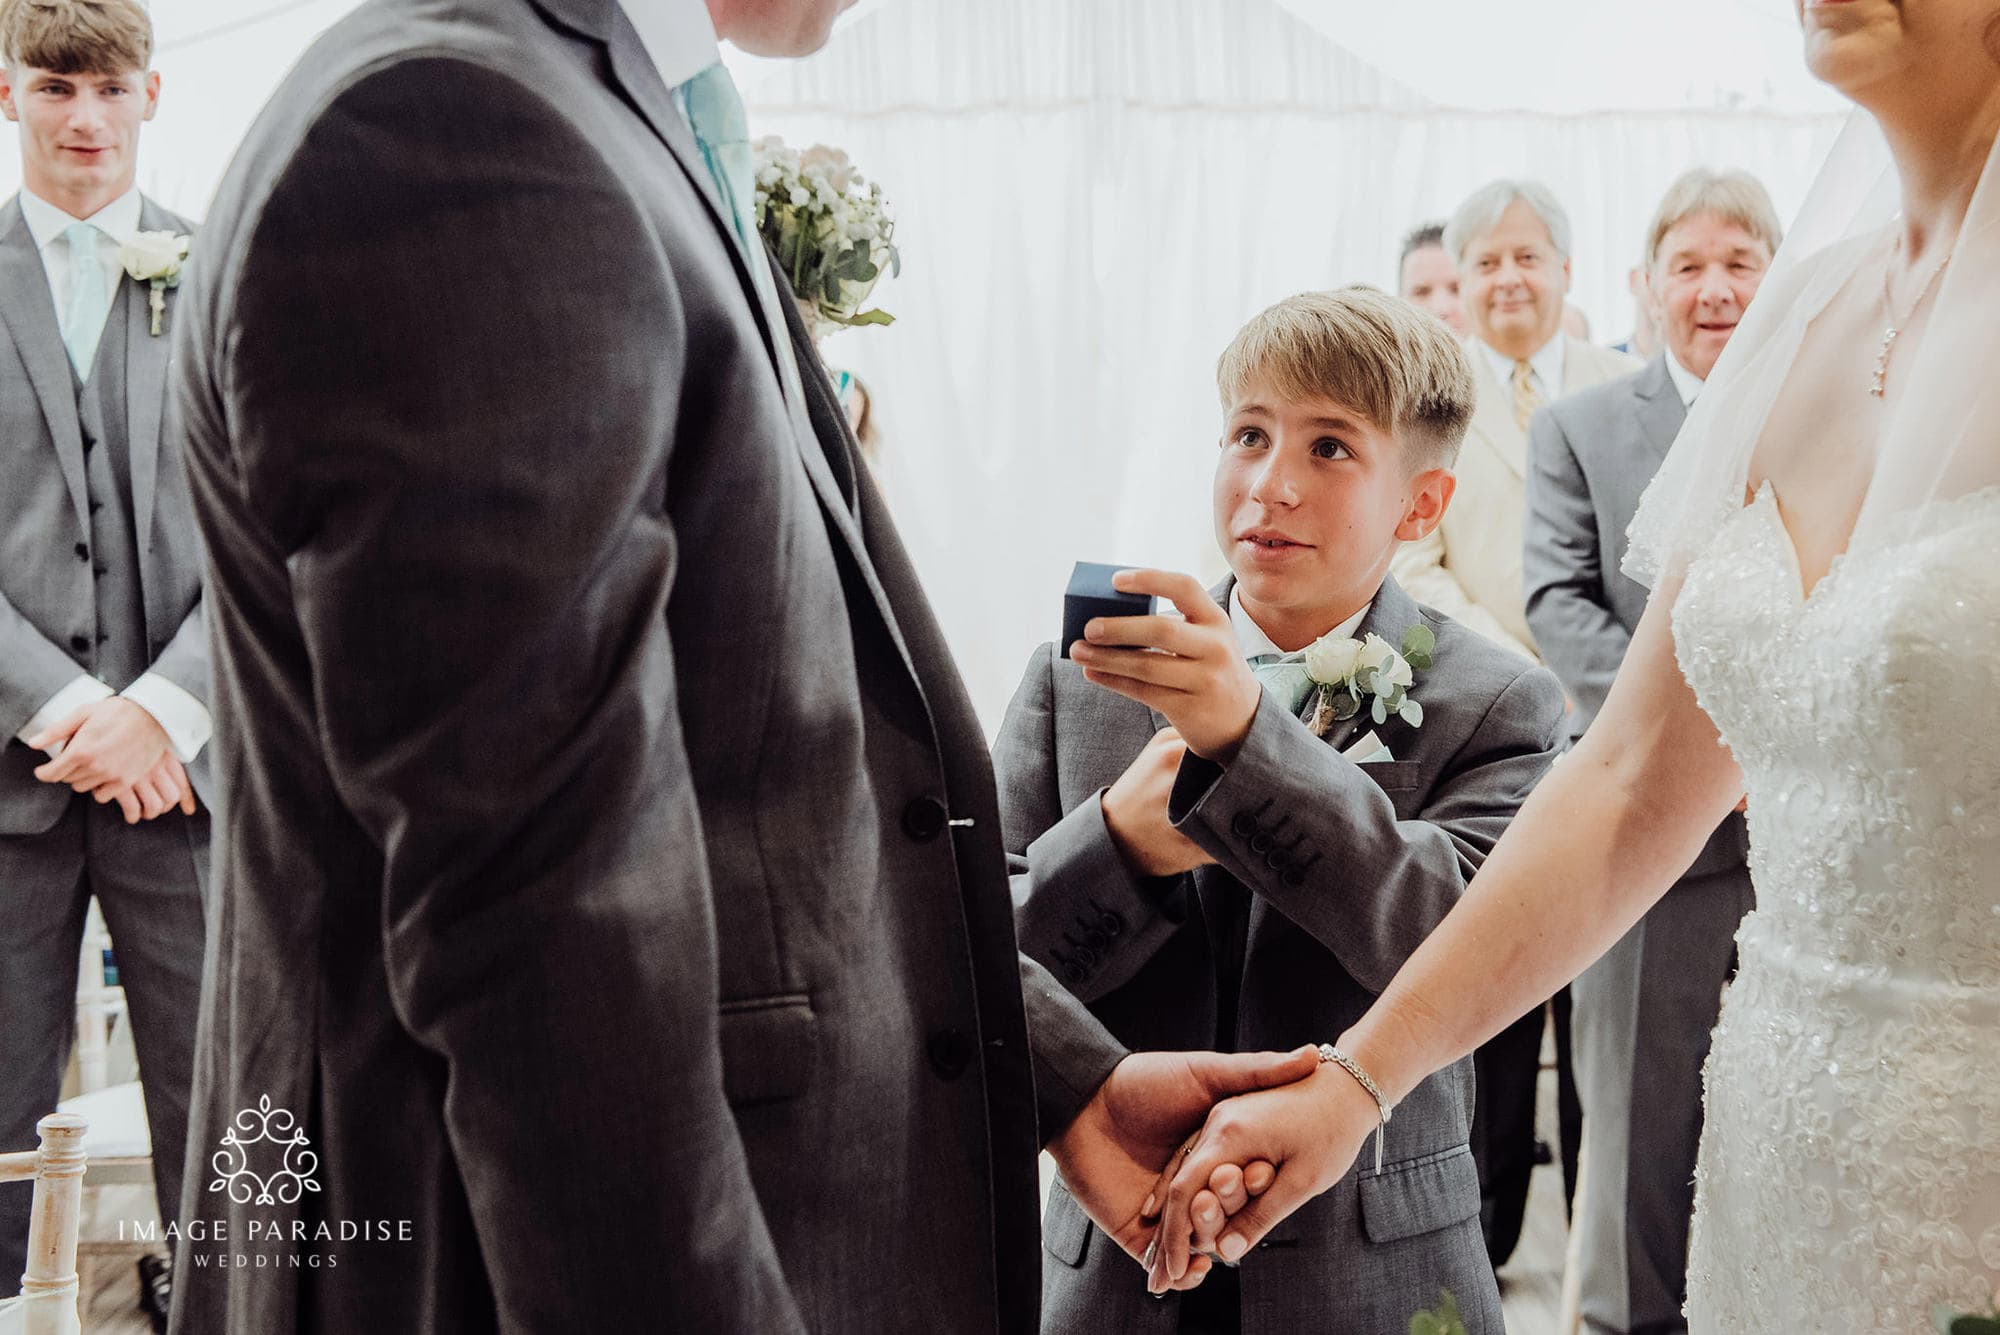 Paige boy holds out ring during the ceremony at Cotswolds hotel and spa